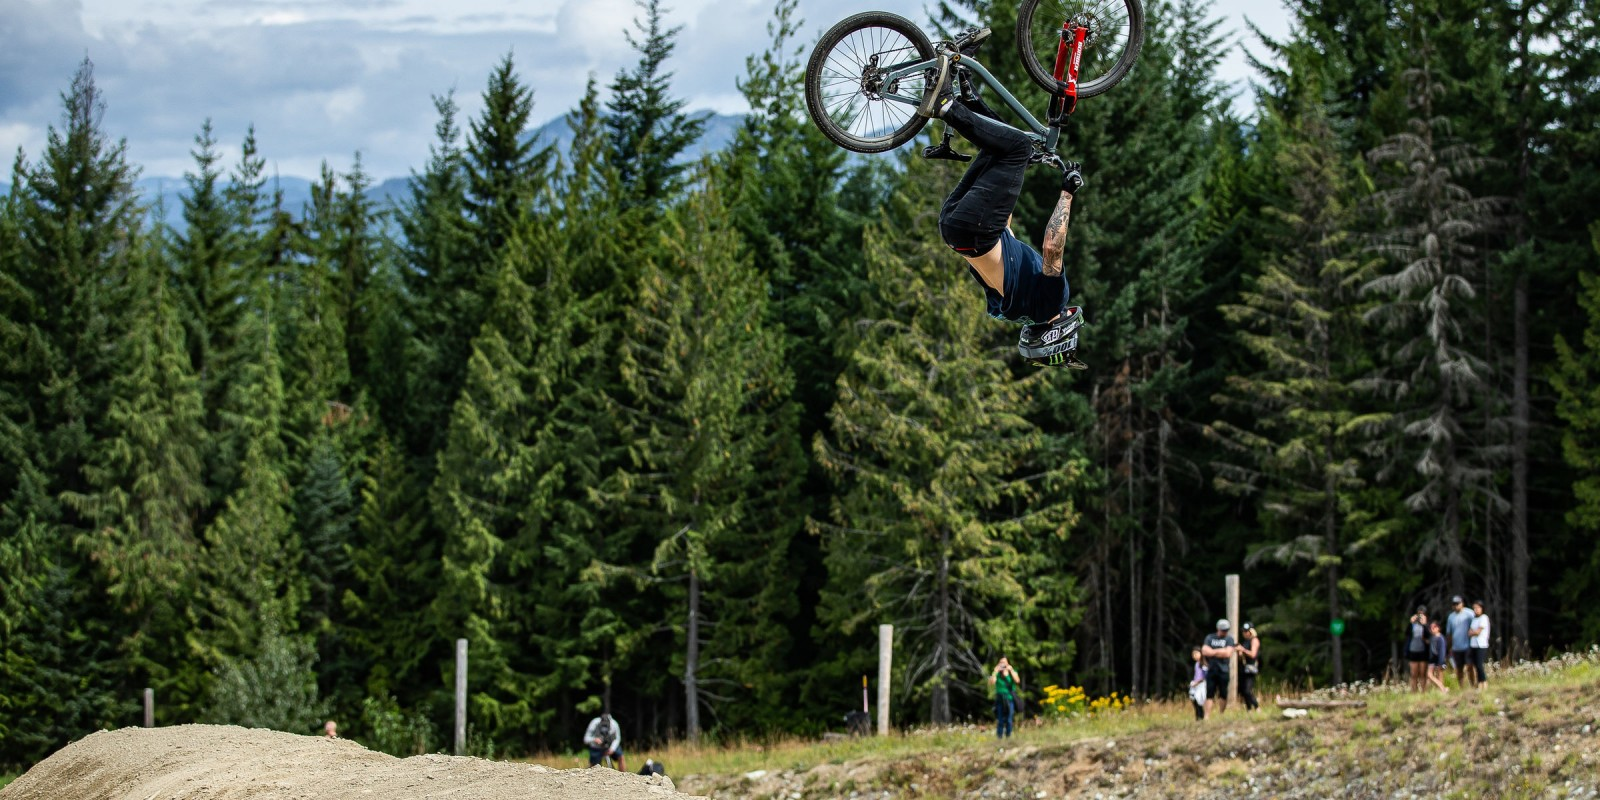 Monster Energy's Mitch Ropelato (USA) continues his domination at Crankworx Whistler with yet another gold medal, taking home the win in the Speed and Style event.